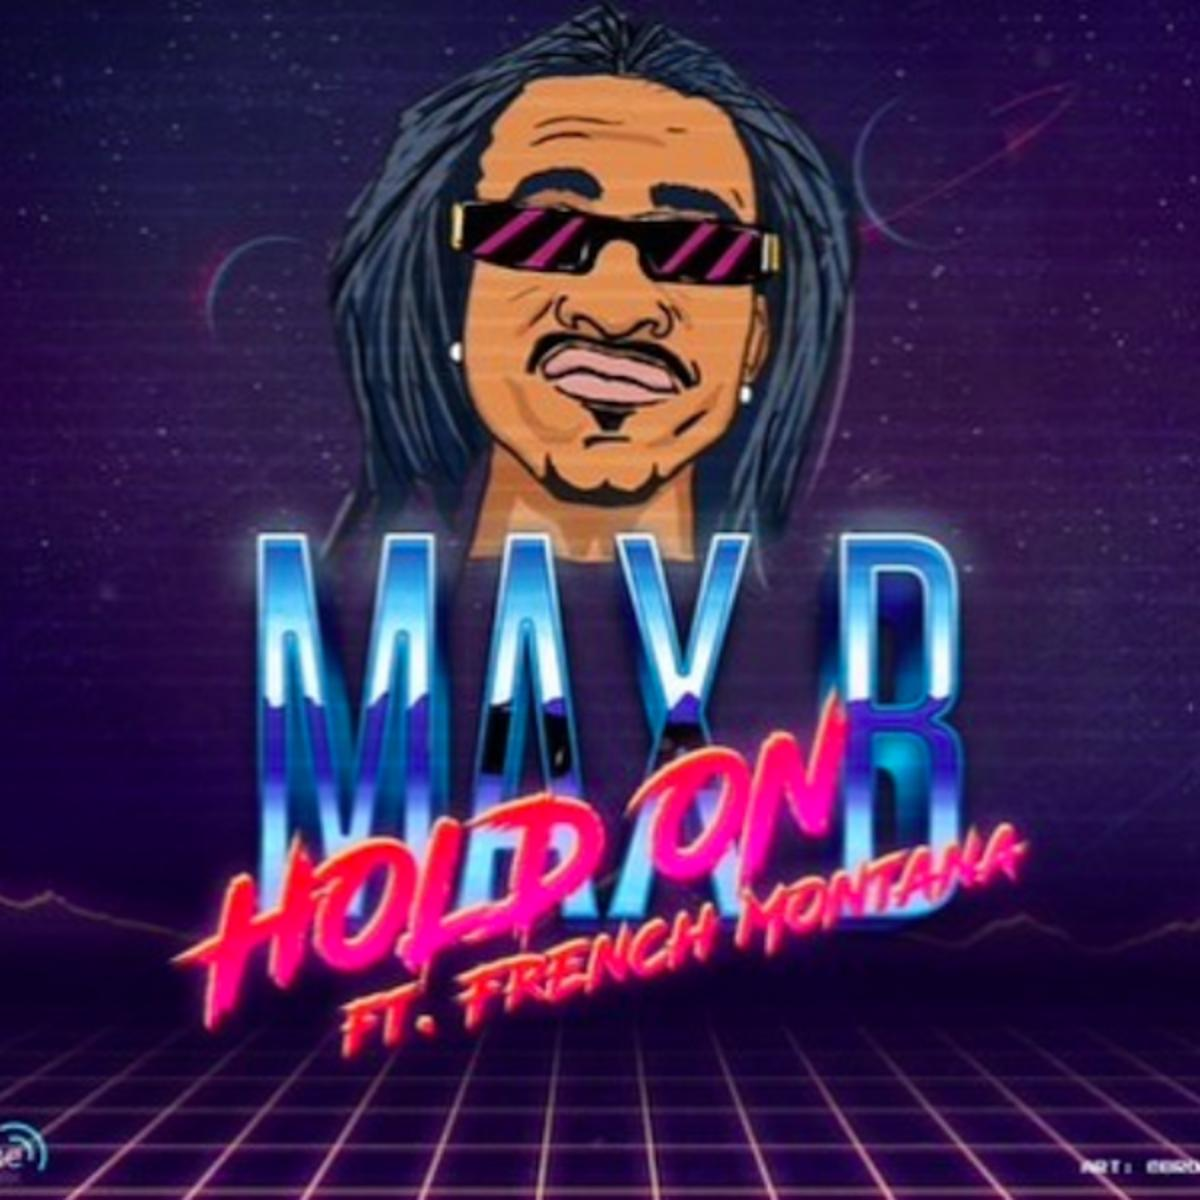 "RT @Complex: Max B and French Montana connect on new track ""Hold On.""  https://t.co/RX7d2N6Smb https://t.co/NF1tGPd2Tm"